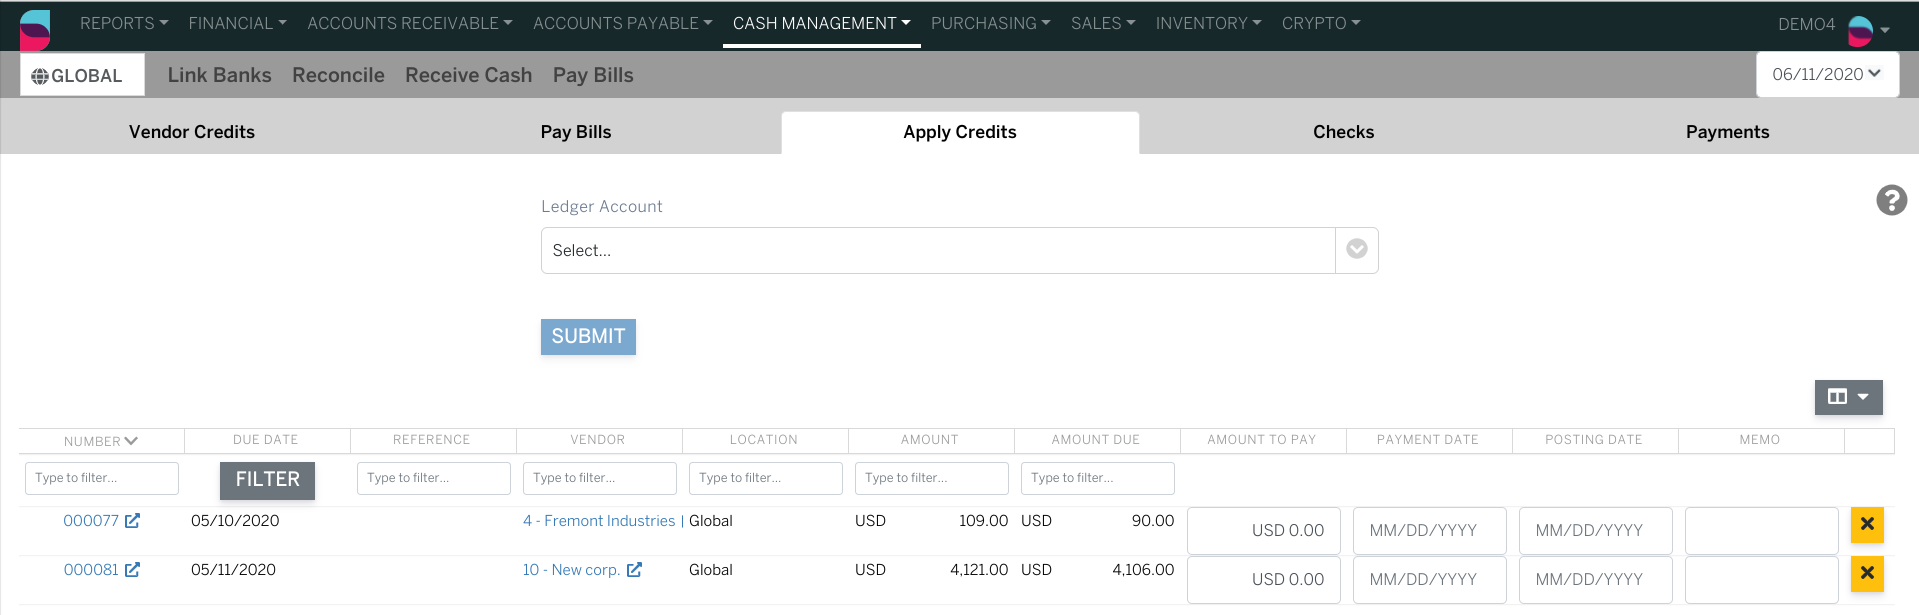 Apply Credits page from Cash Management>Pay Bills